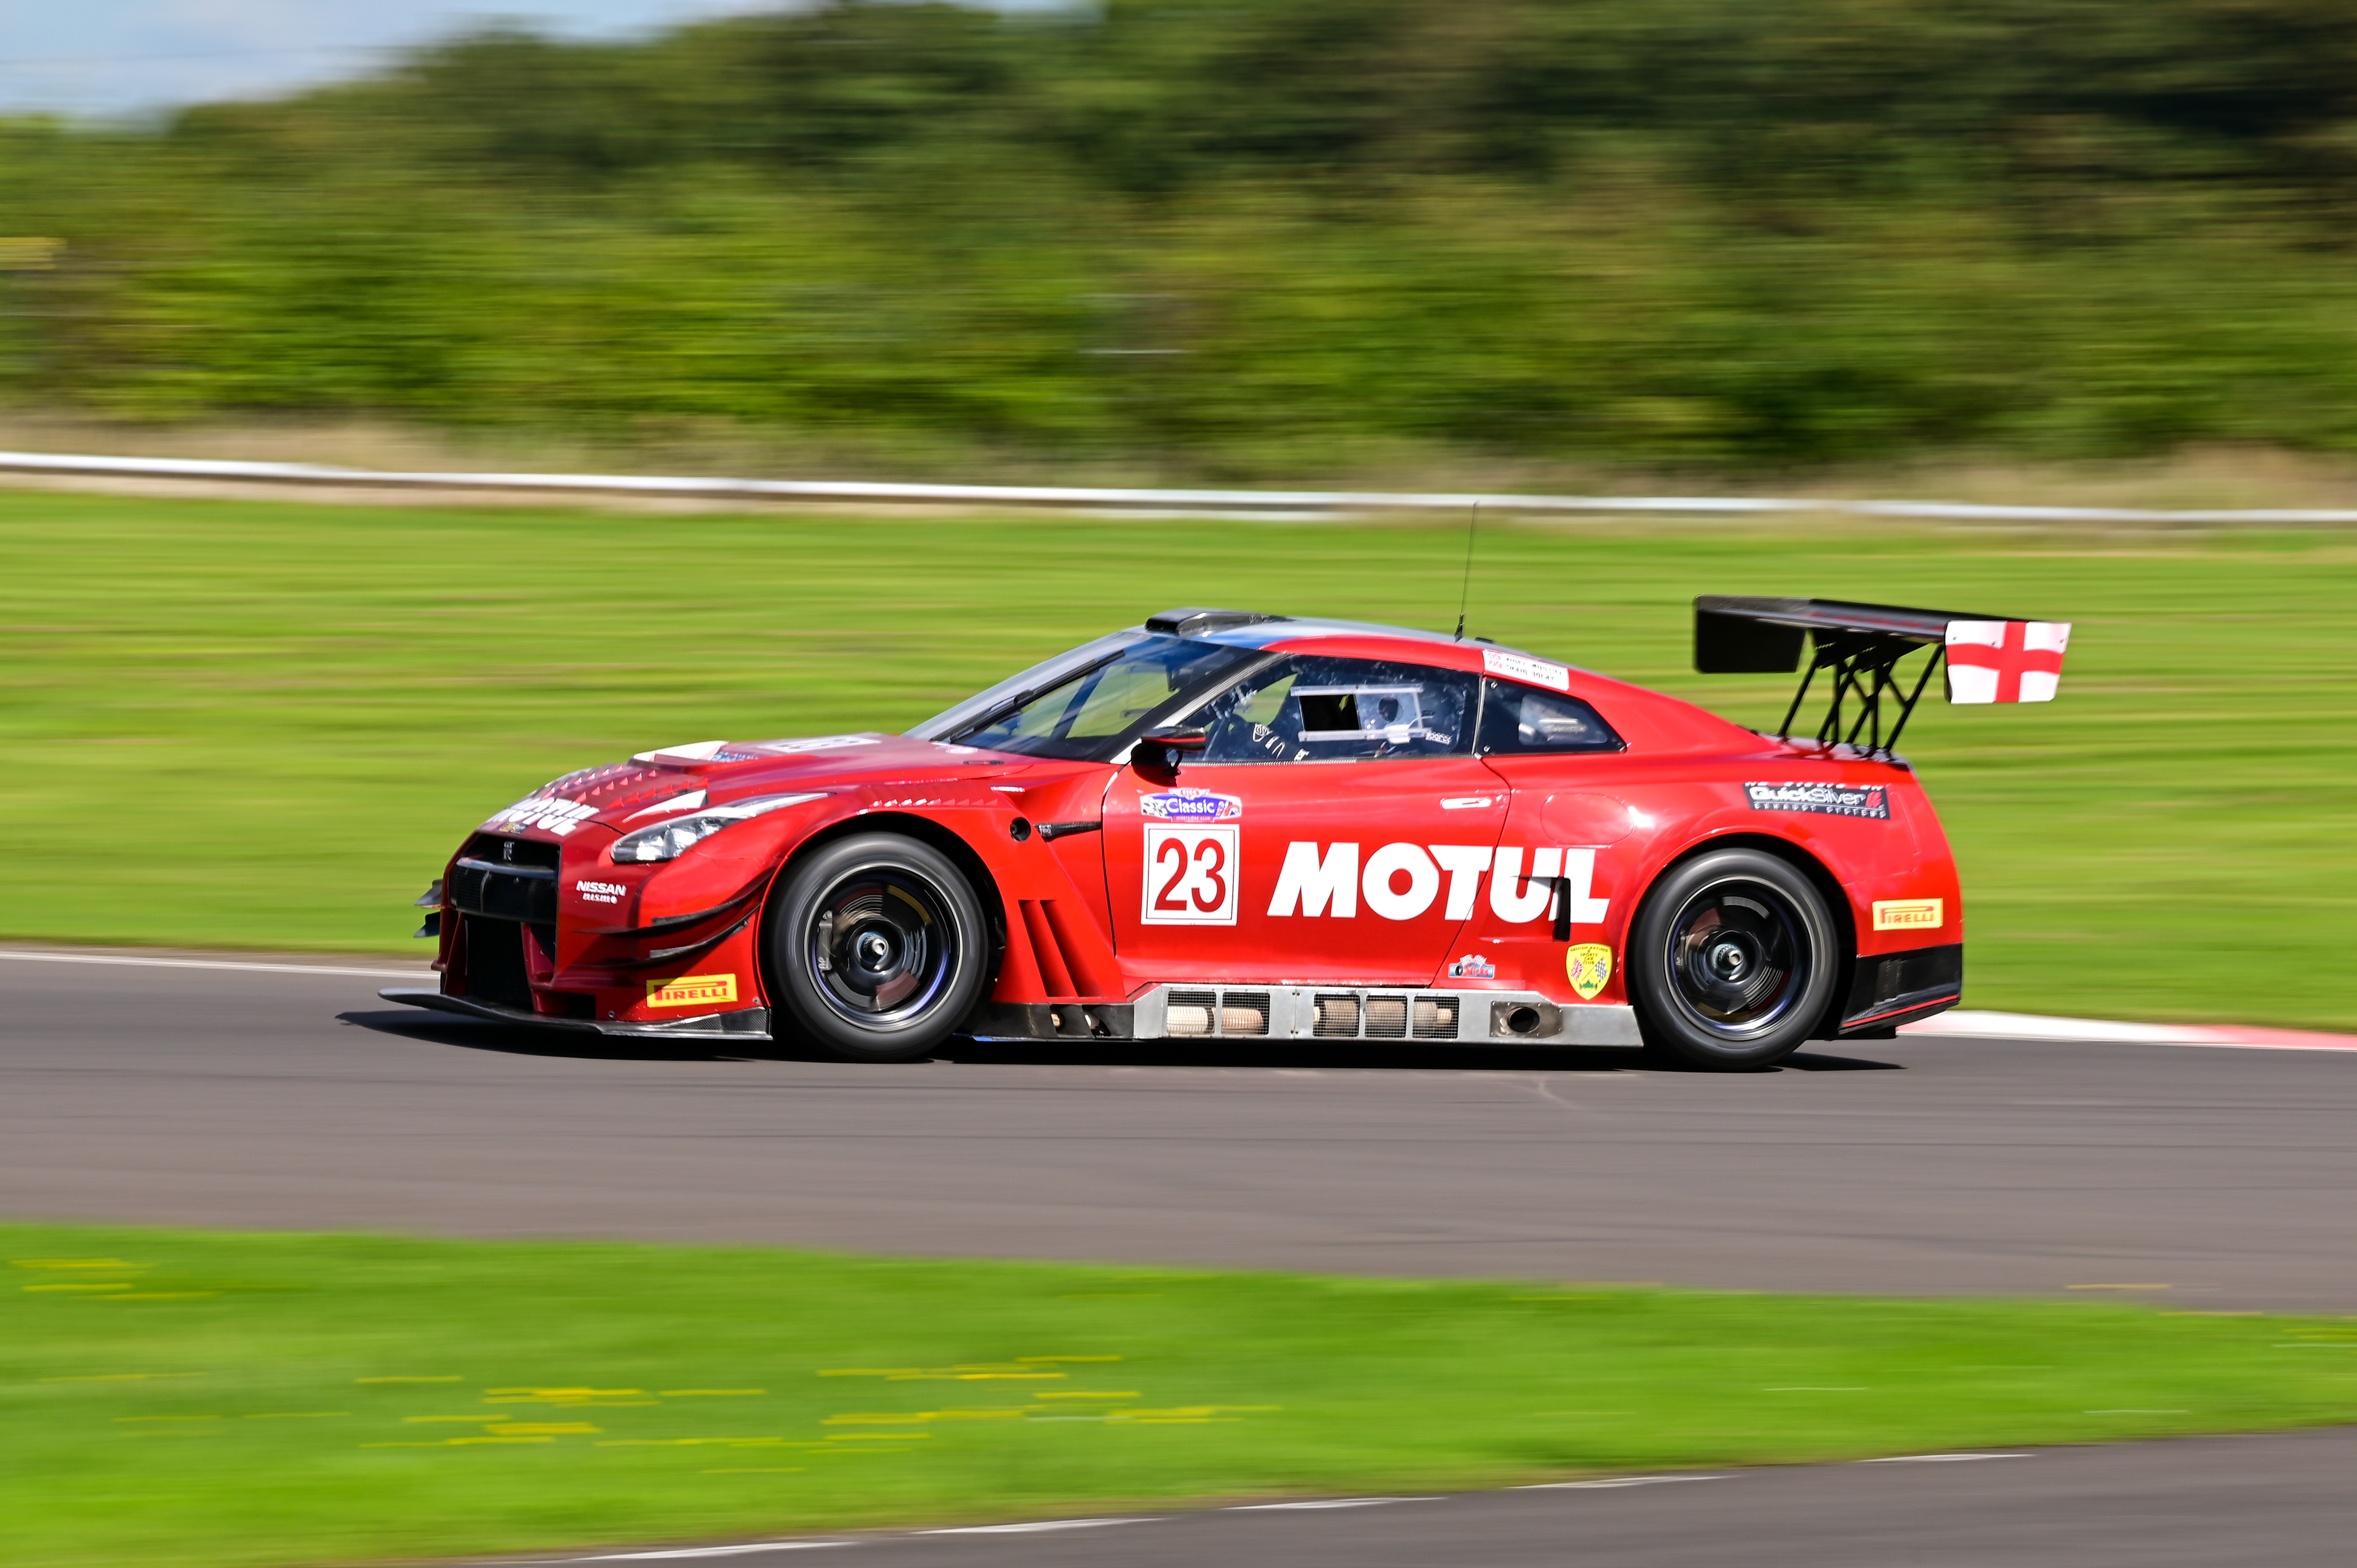 CASTLE COMBE RACE CIRCUIT MAKES MOTUL ITS OFFICIAL LUBRICANT PARTNER